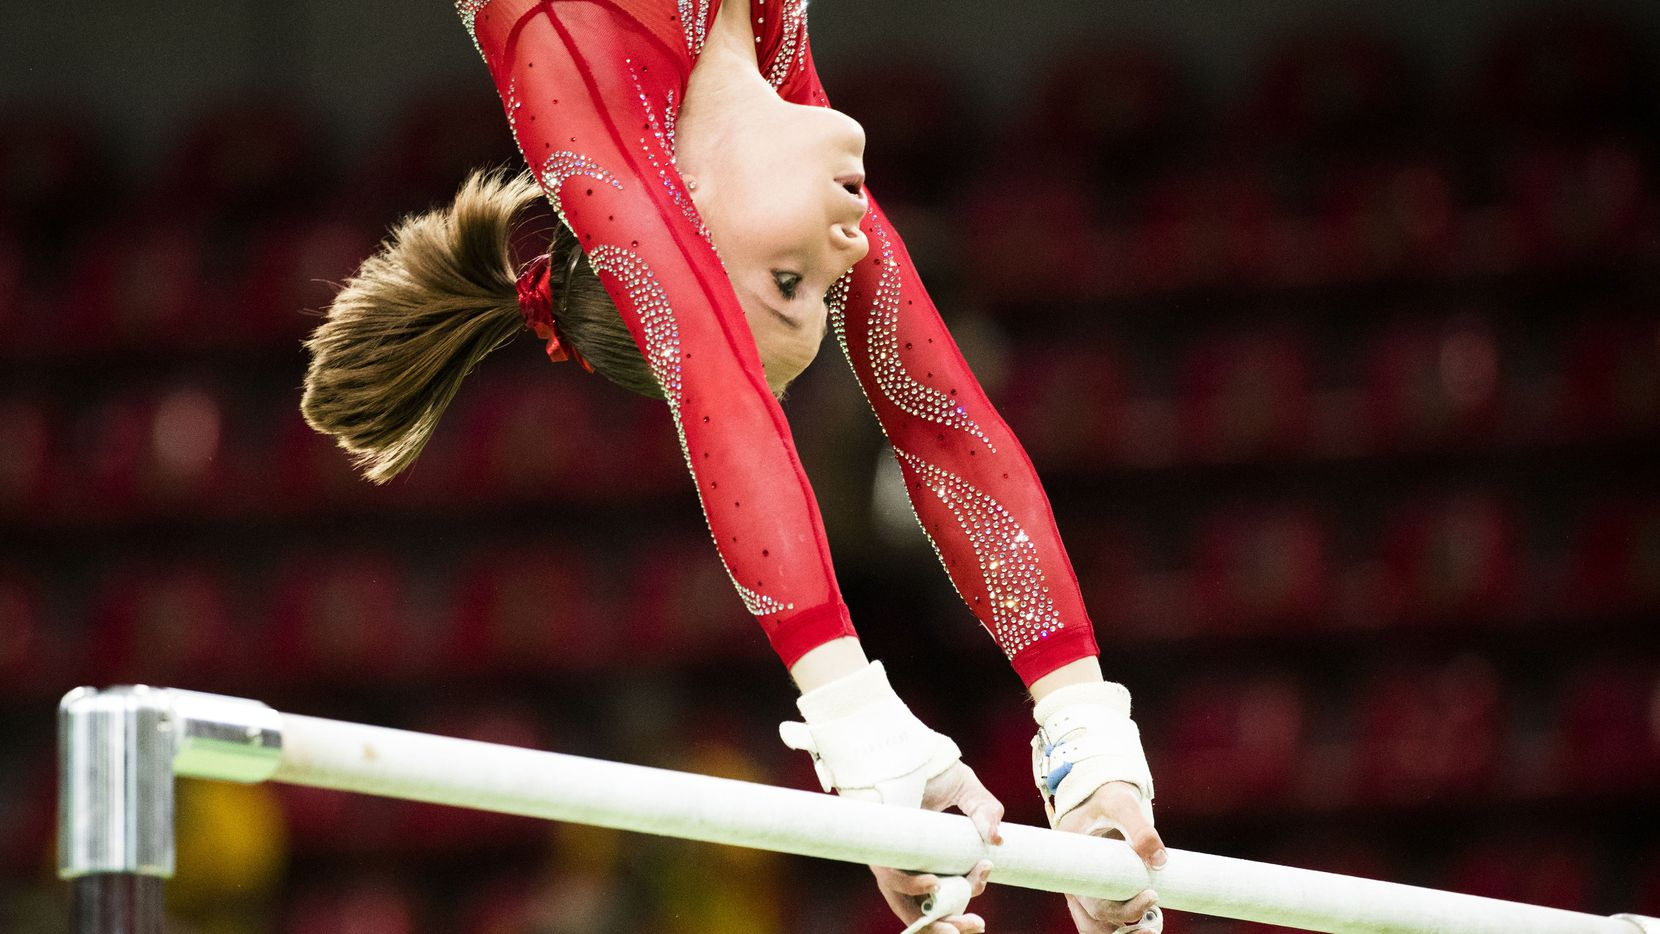 USA gymnast Madison Kocian of Dallas practices on the uneven bars during a training session at the Rio Olympic Arena on the day before the opening ceremonies of the Rio 2016 Olympic Games on Thursday, Aug. 4, 2016, in Rio de Janeiro. (Smiley N. Pool/The Dallas Morning News)